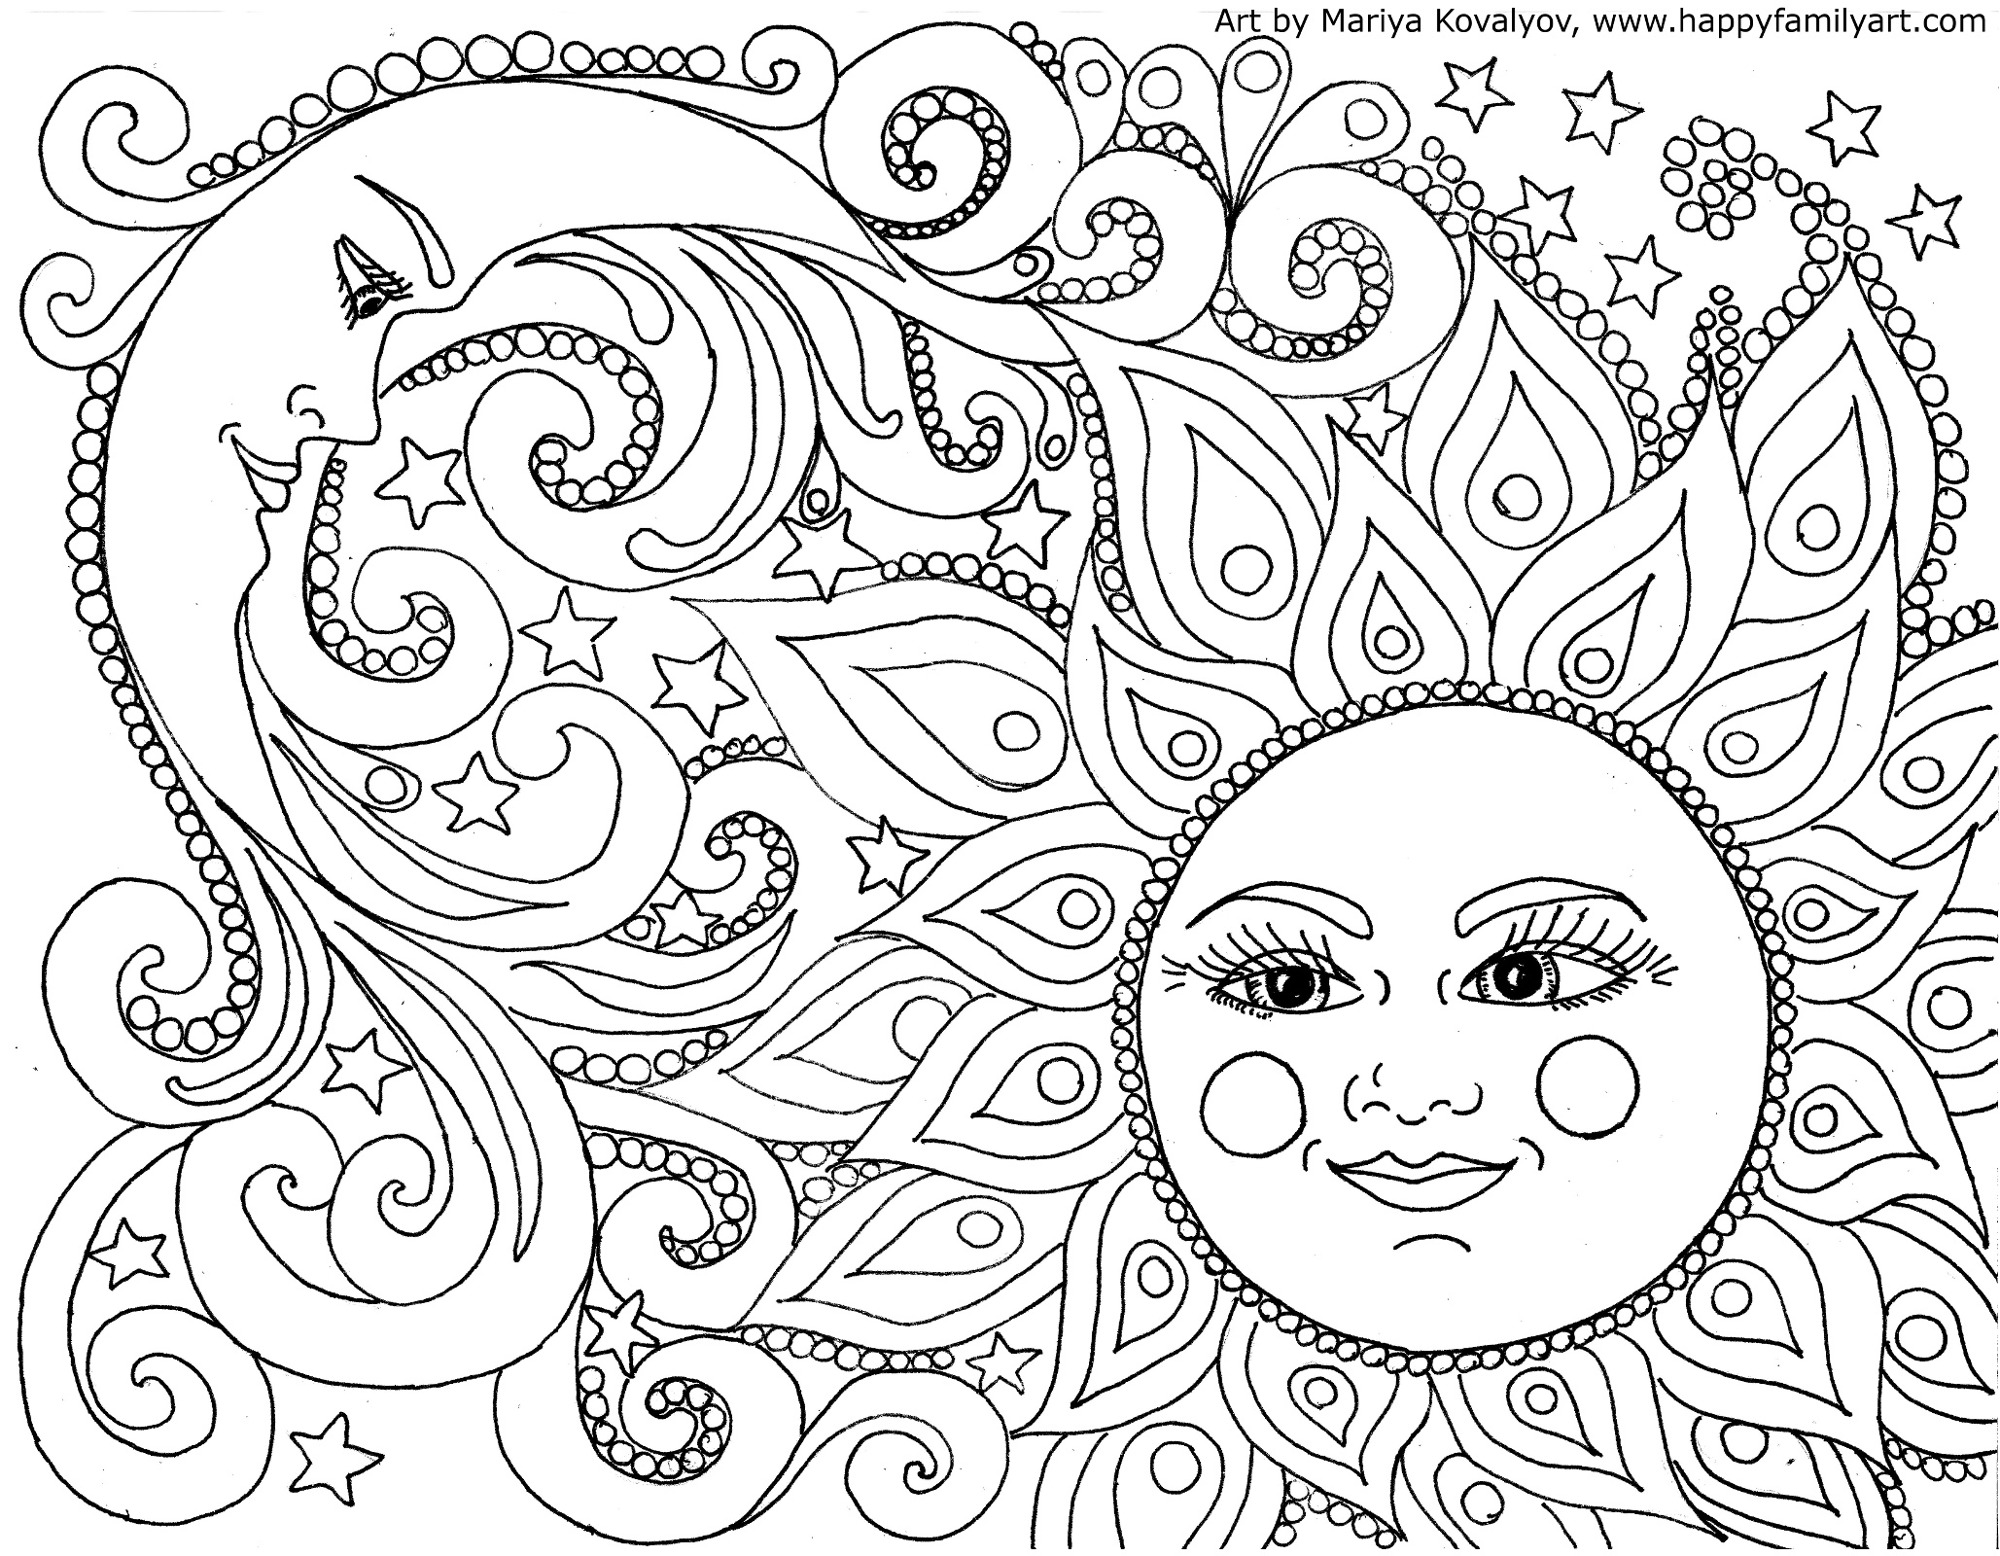 Coloring Pages Delectable Happy Family Art  Original And Fun Coloring Pages Inspiration